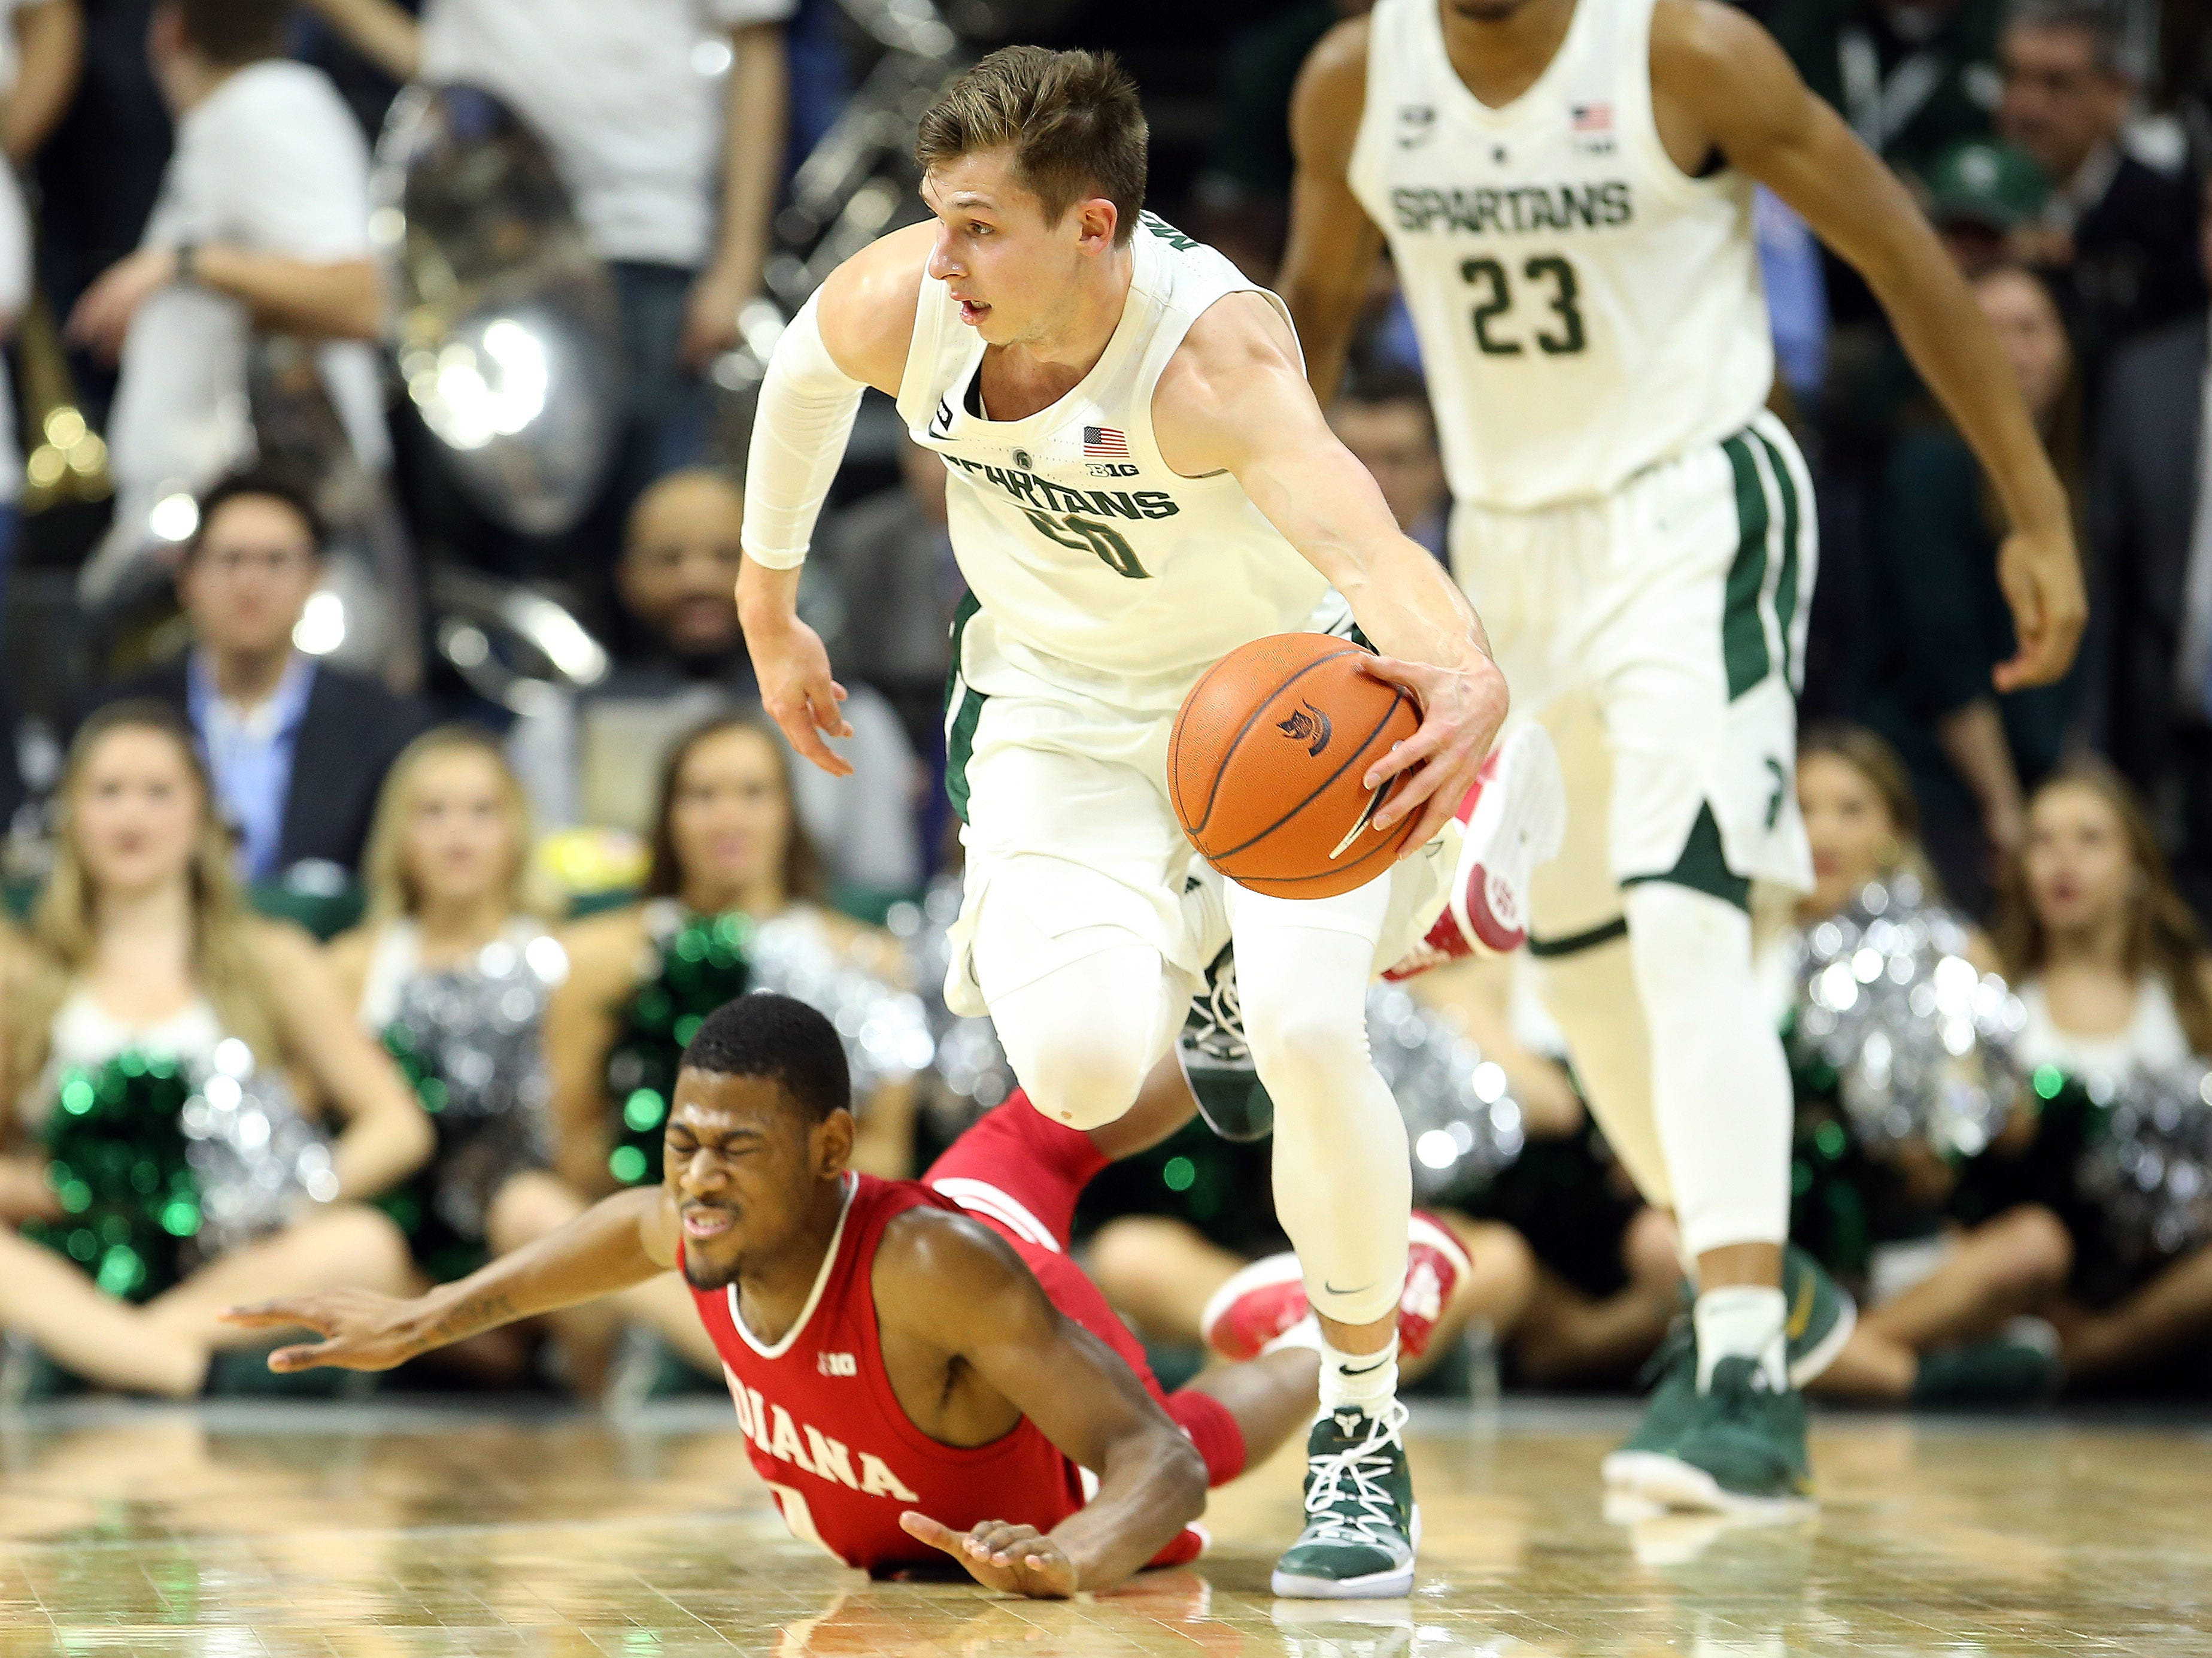 Feb 2, 2019; East Lansing, MI, USA; Michigan State Spartans guard Matt McQuaid (20) steals the ball from Indiana Hoosiers guard Aljami Durham (1) during the first half  at the Breslin Center. Mandatory Credit: Mike Carter-USA TODAY Sports